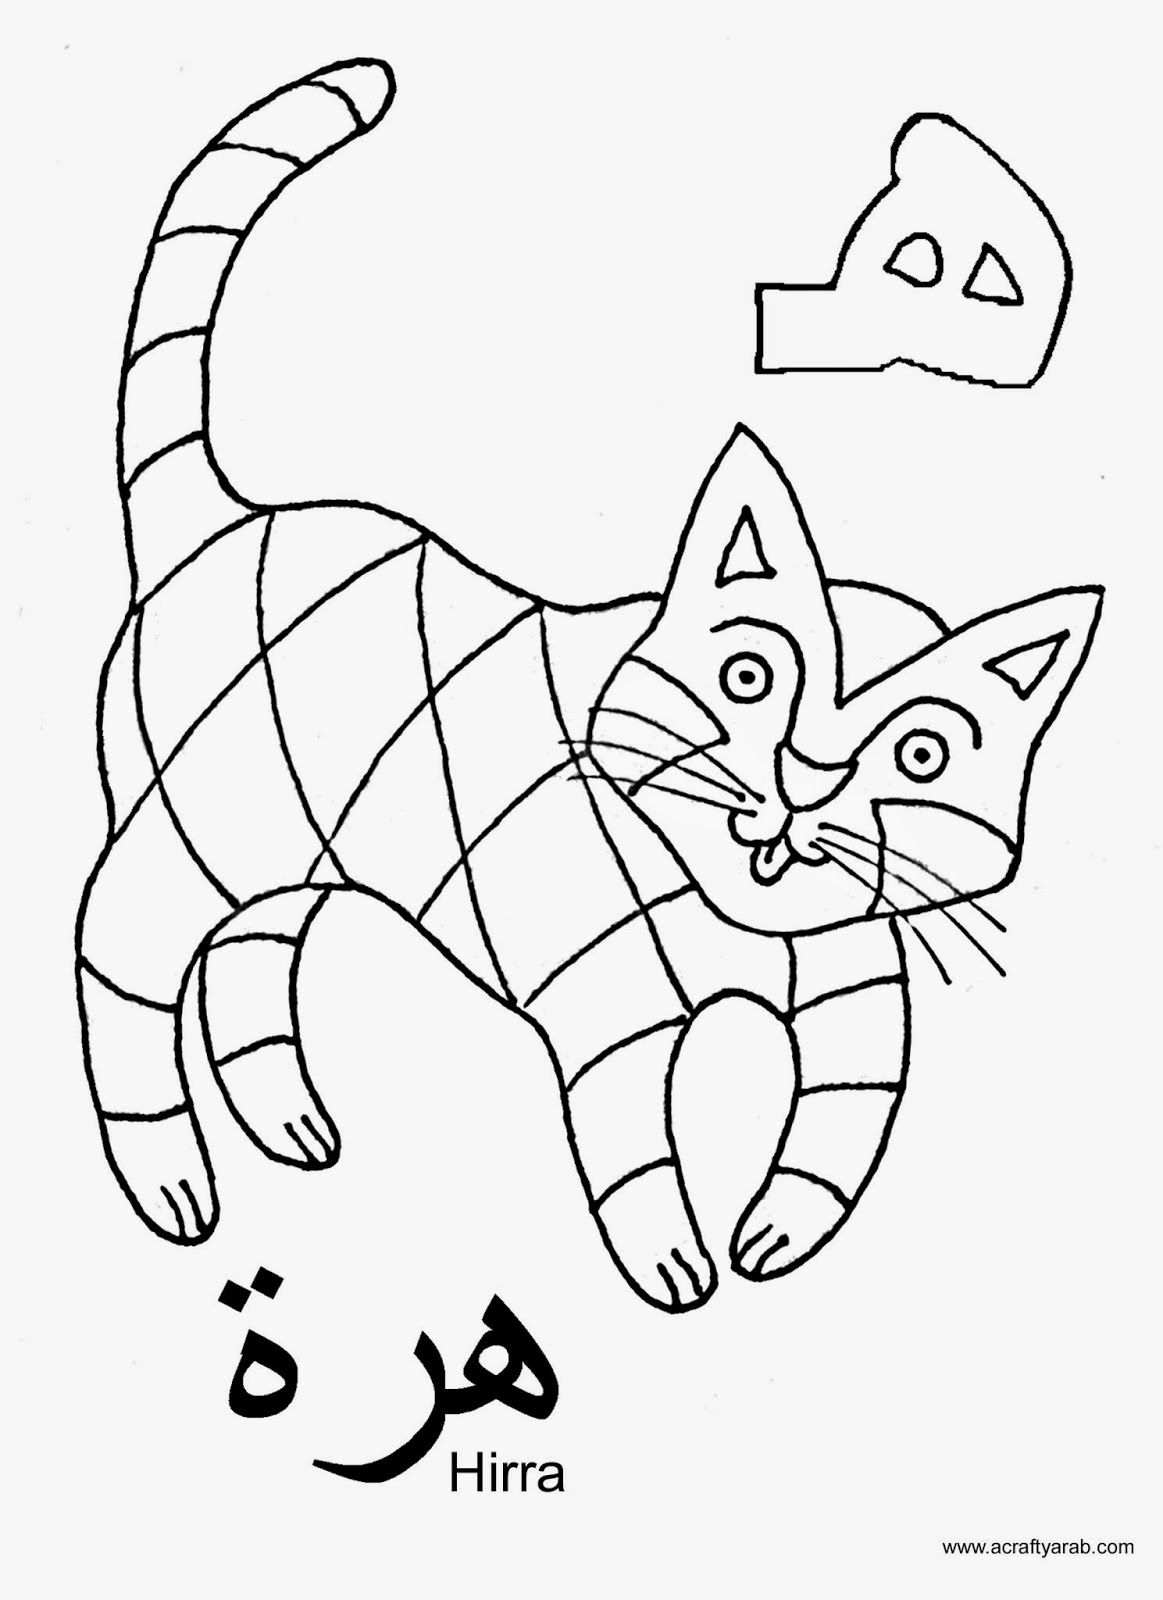 Arabic alphabet for kids with cute animals and fruit for each letter - Here Is The First Letter Of The Arabic Alphabet Alif For Pronounced Asad English Lion Print And Color The Letter The Animal And